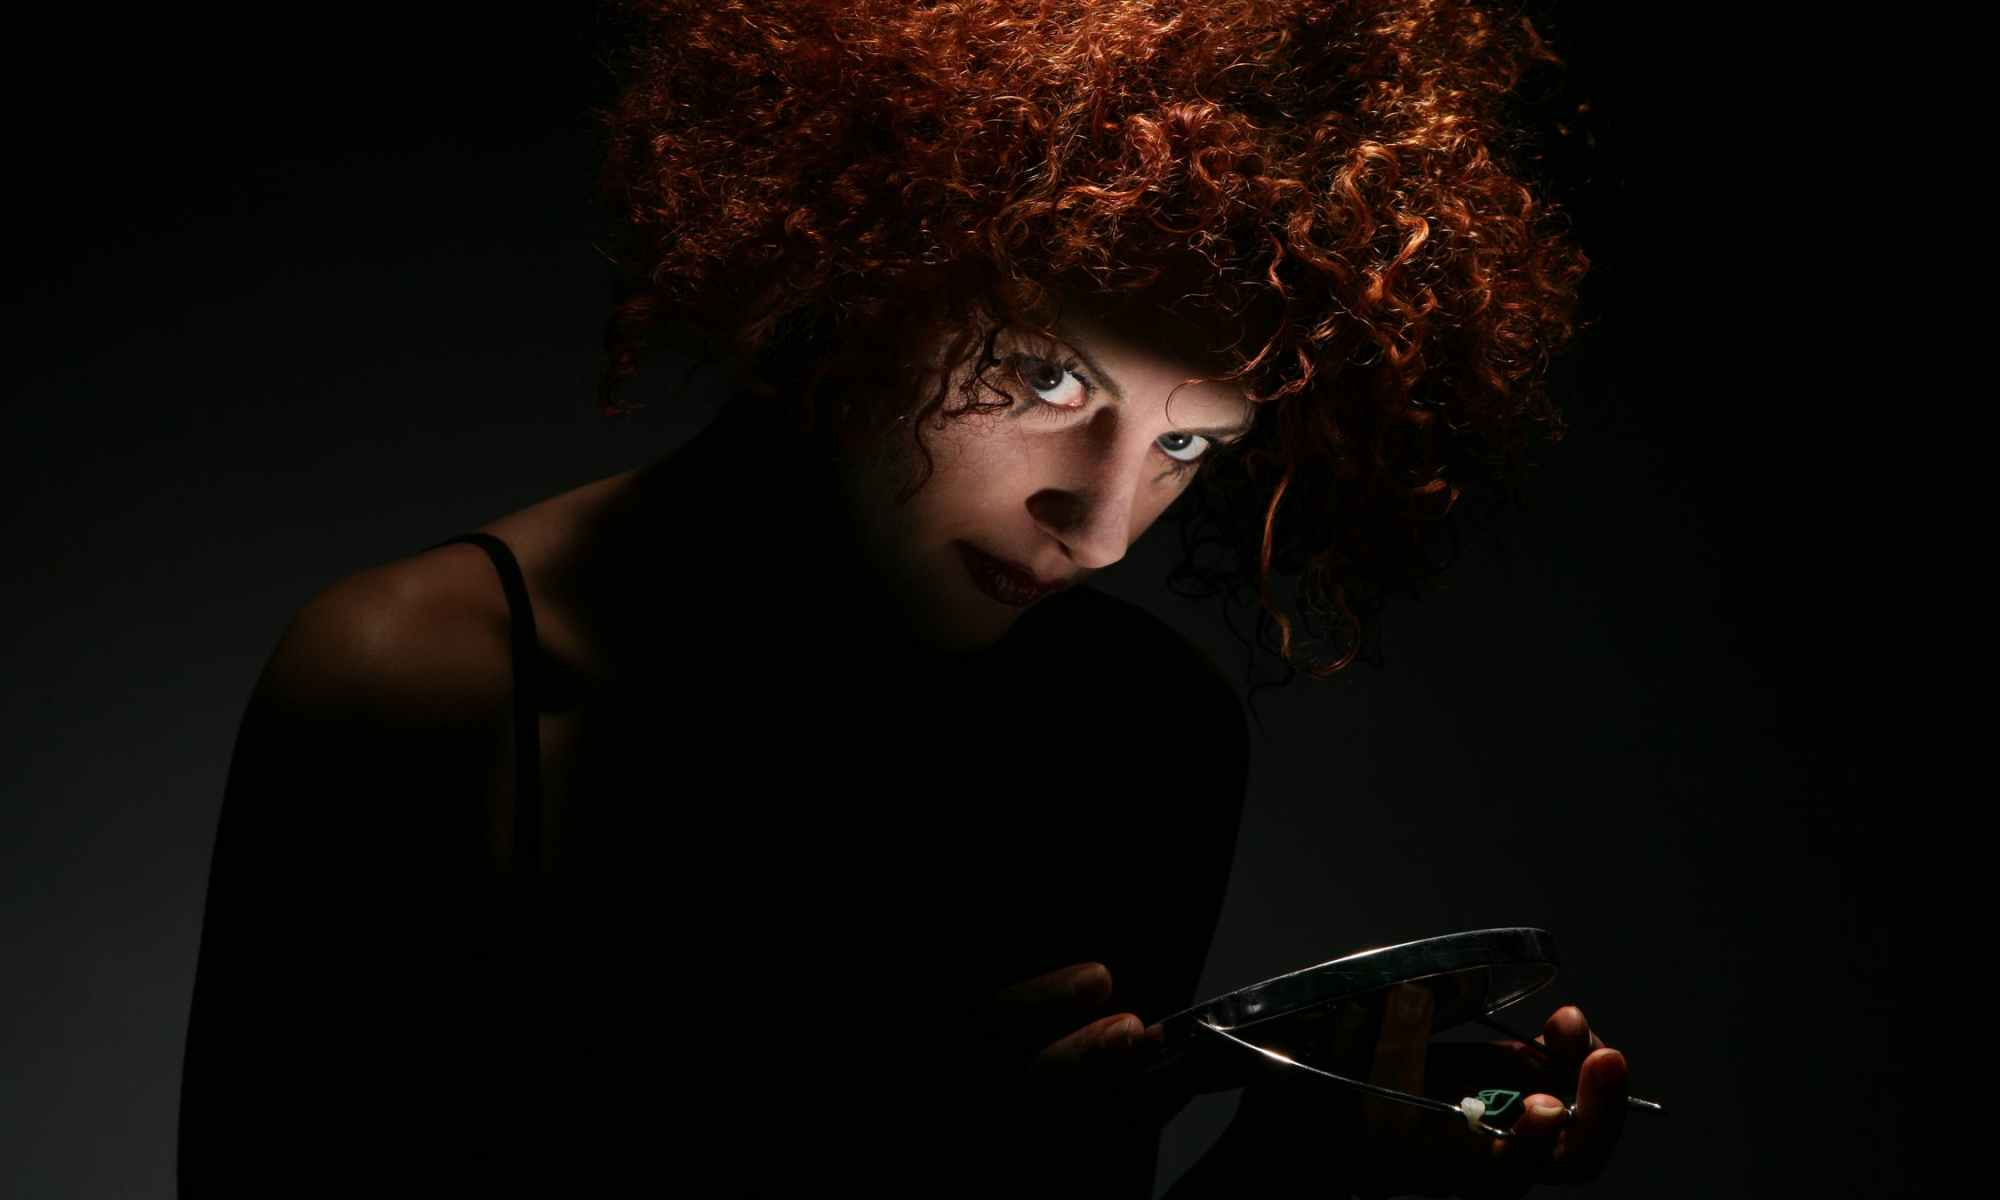 Schizophrenic woman with curly red hair holding small round mirror